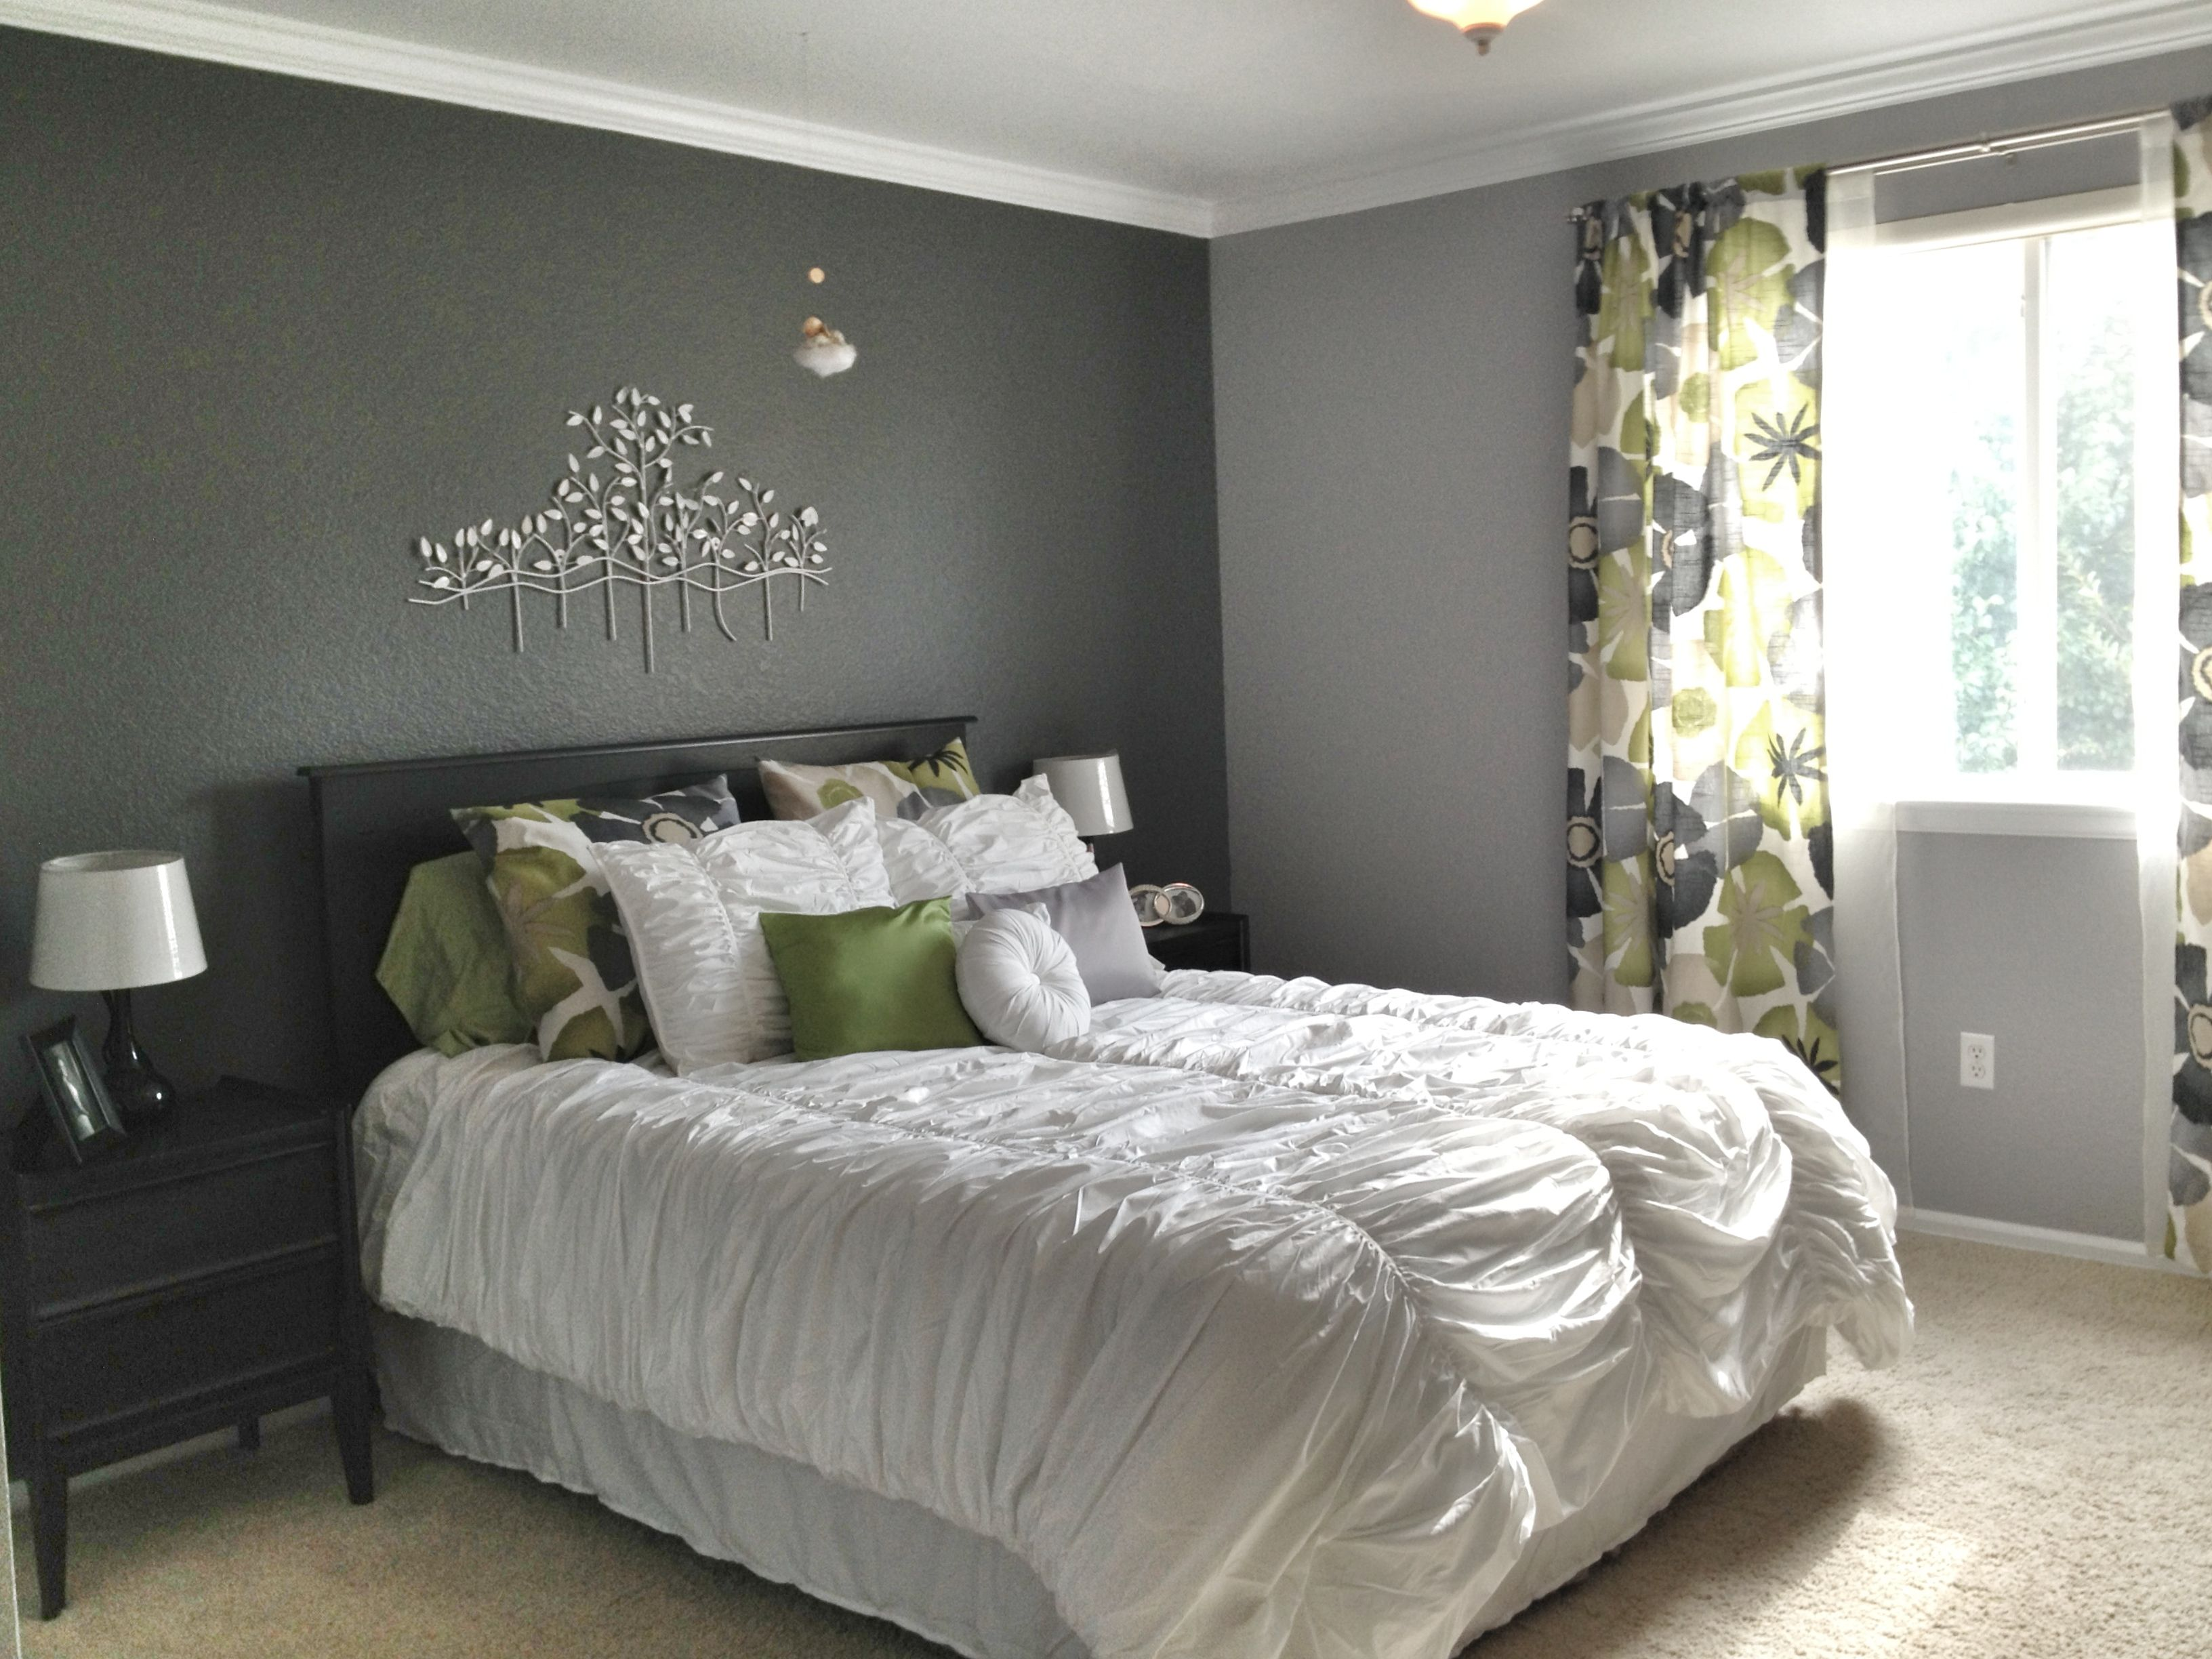 Accent Wall Ideas For Master Bedroom Grey Master Bedroom Dark Accent Wall Fun Patterned Curtains